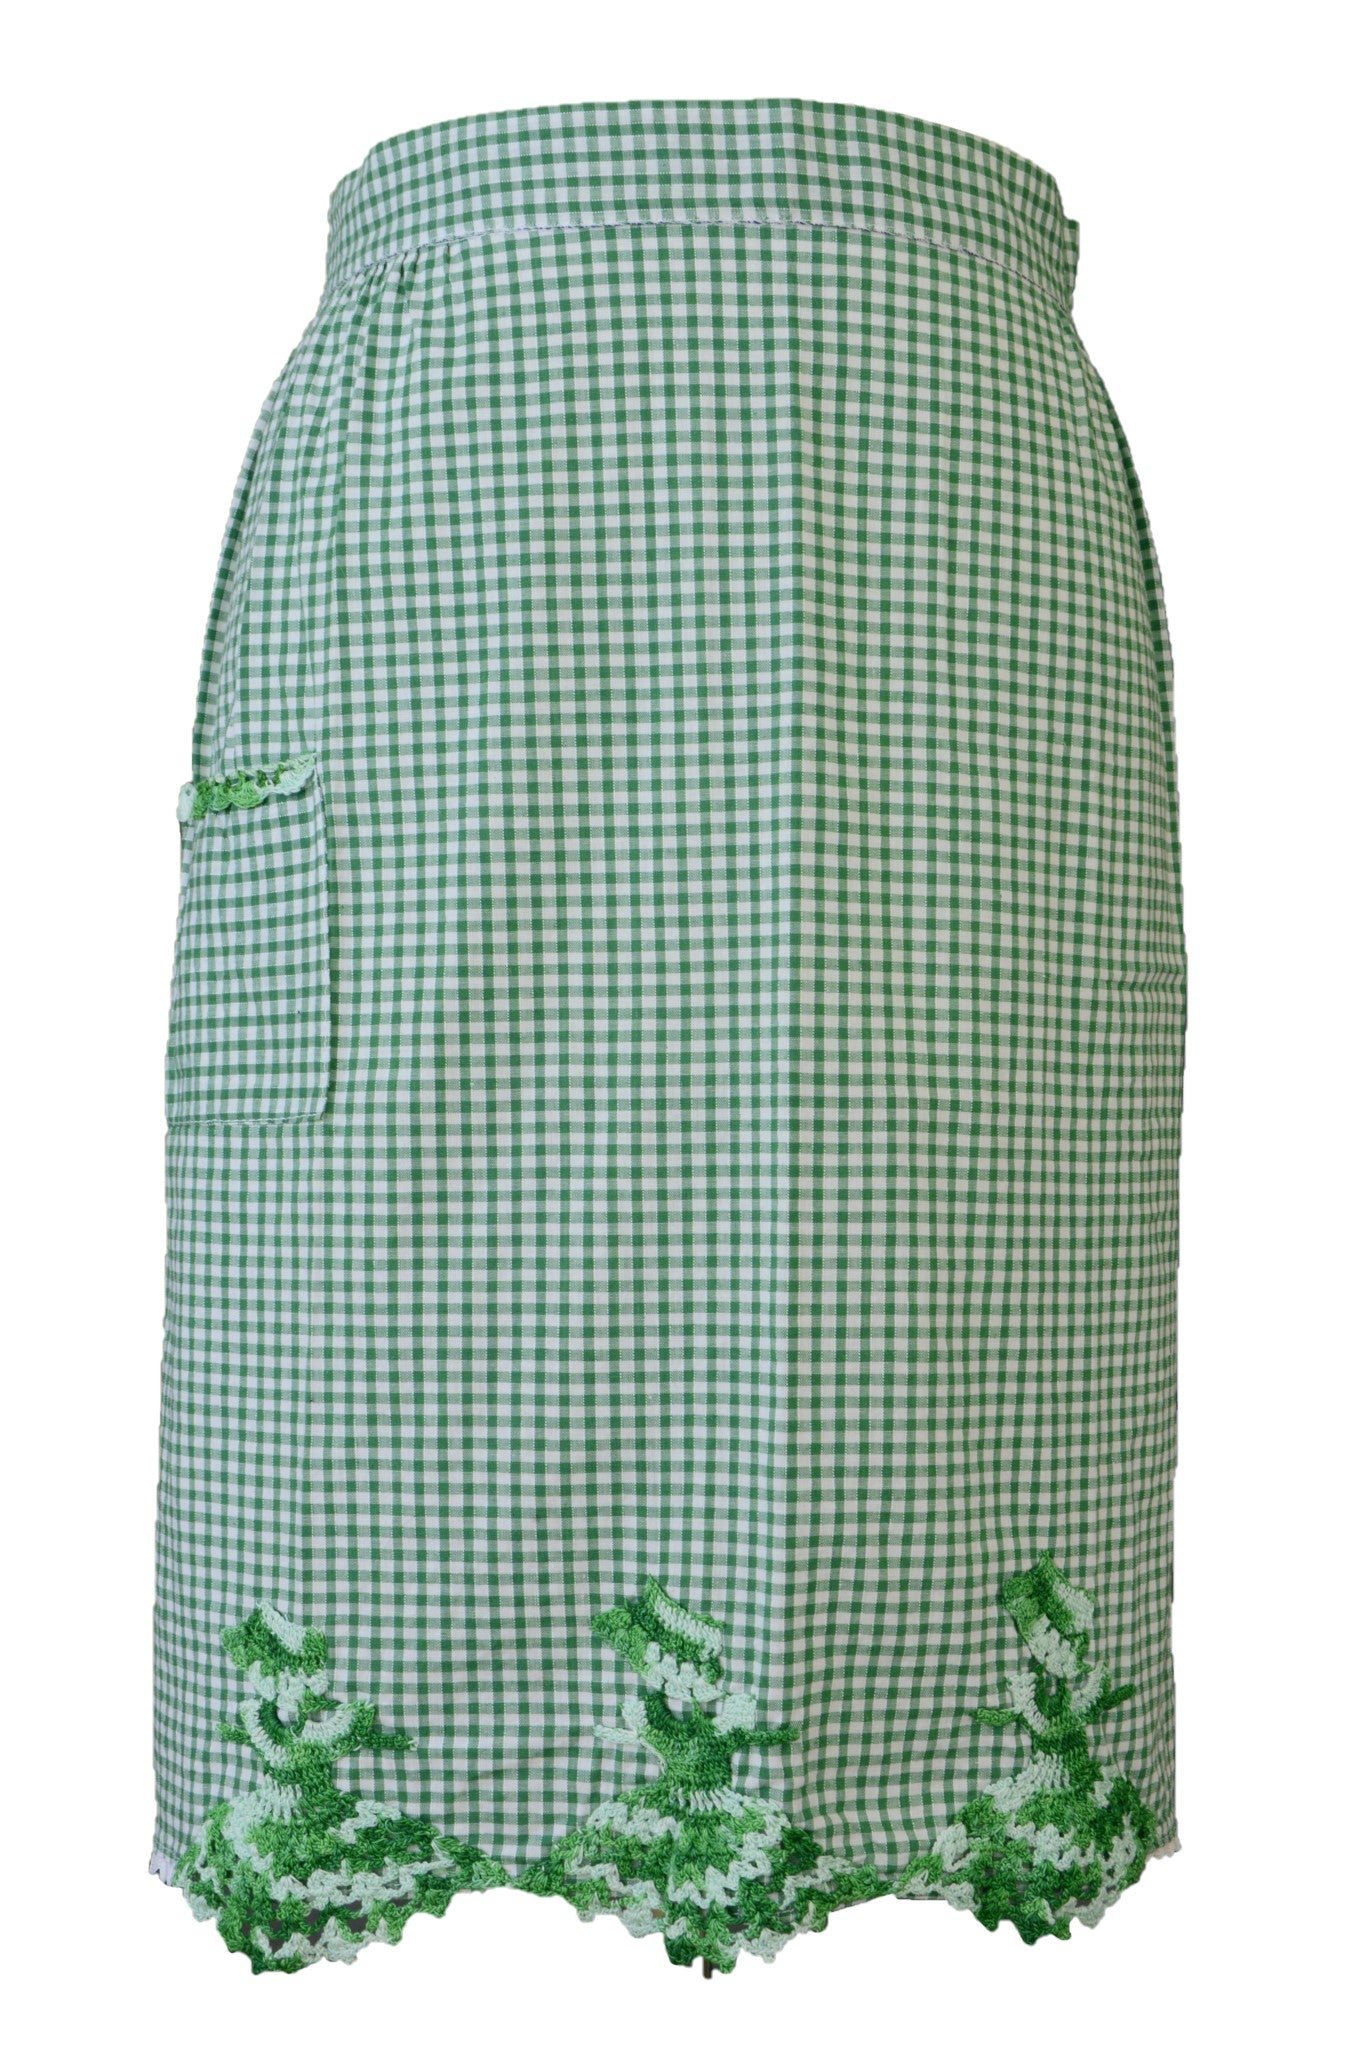 Vintage apron, green and white gingham